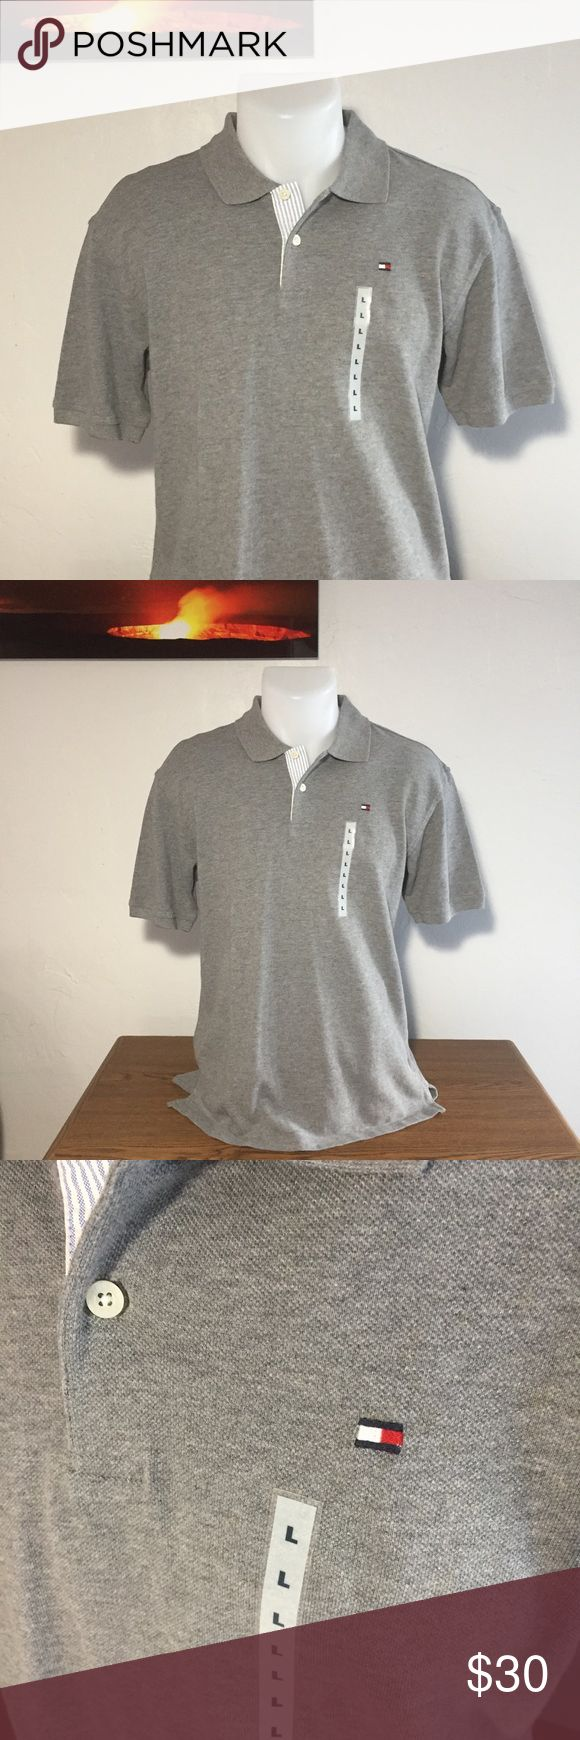 """Men's - NWT Tommy Hilfiger Gray Polo Shirt Brand new with tags!! It has the Tommy flag logo embroidered on the left chest.  Approximate measurements: Total length - 26 1/2"""" Armpit to armpit - 20 1/4"""" Sleeve length - 9 1/2""""  🚫Sorry, no trades or modeling🚫  M1083 Tommy Hilfiger Shirts Polos"""